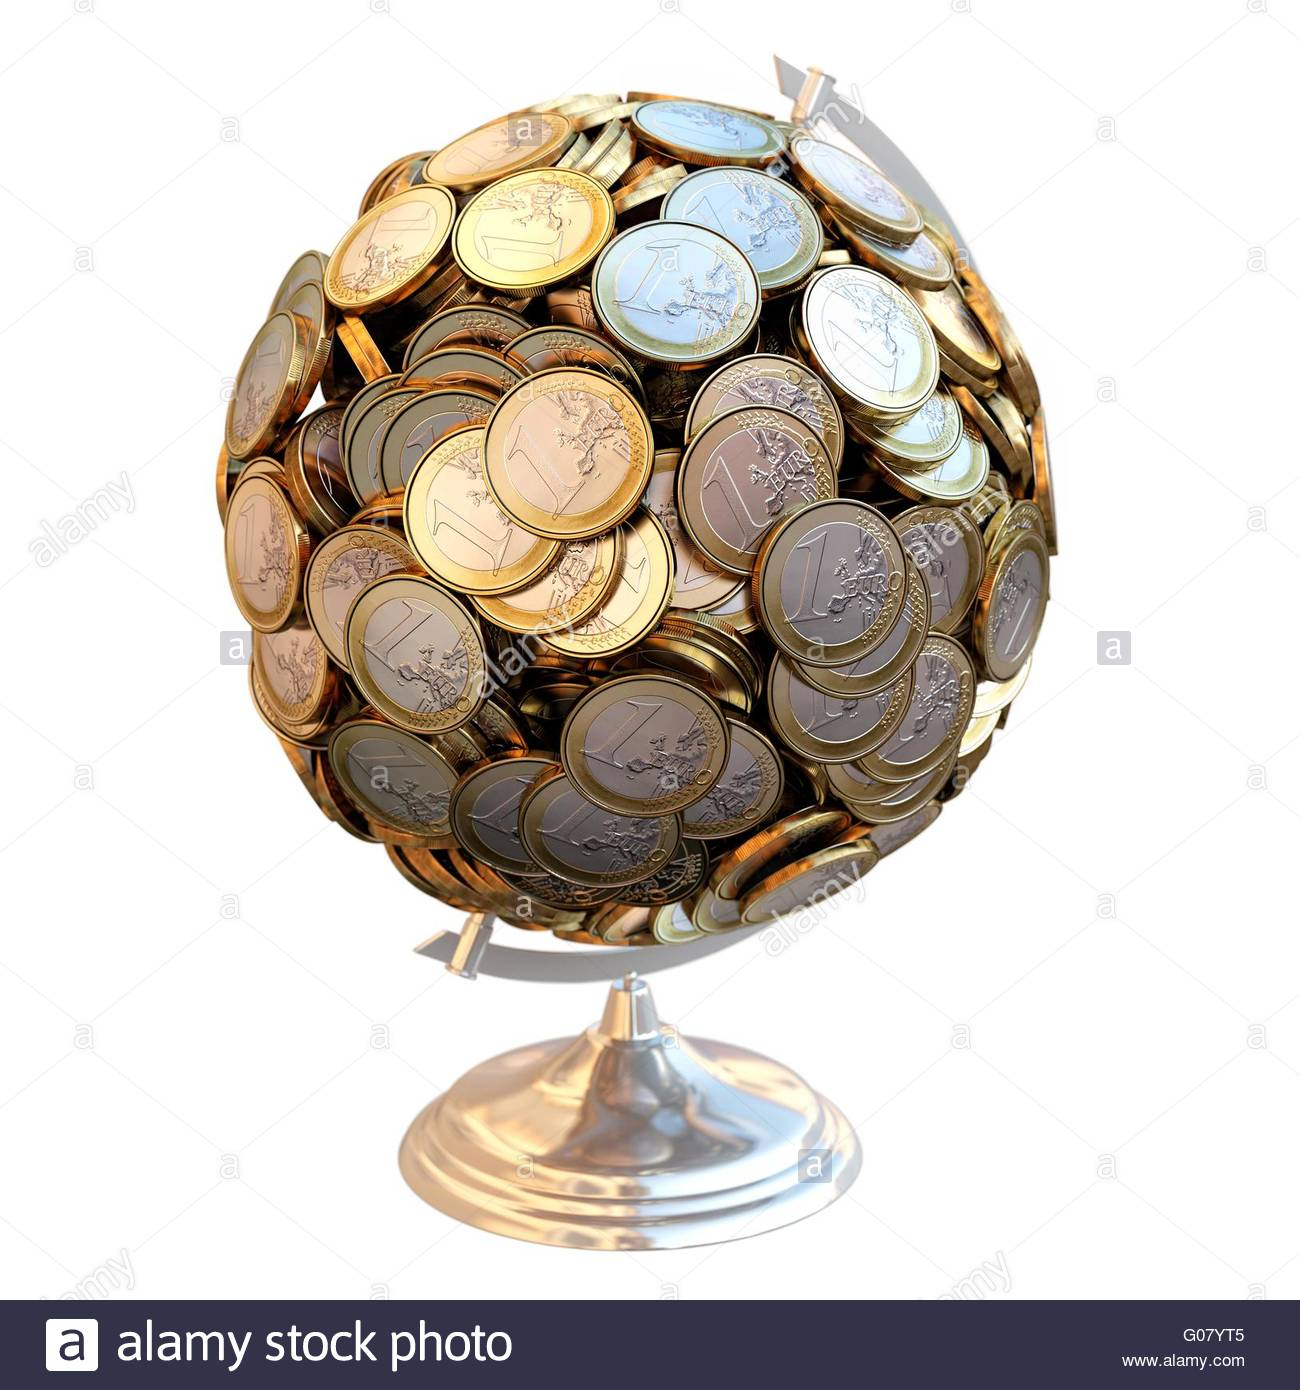 Desktop Globe created out of money. - Stock Image